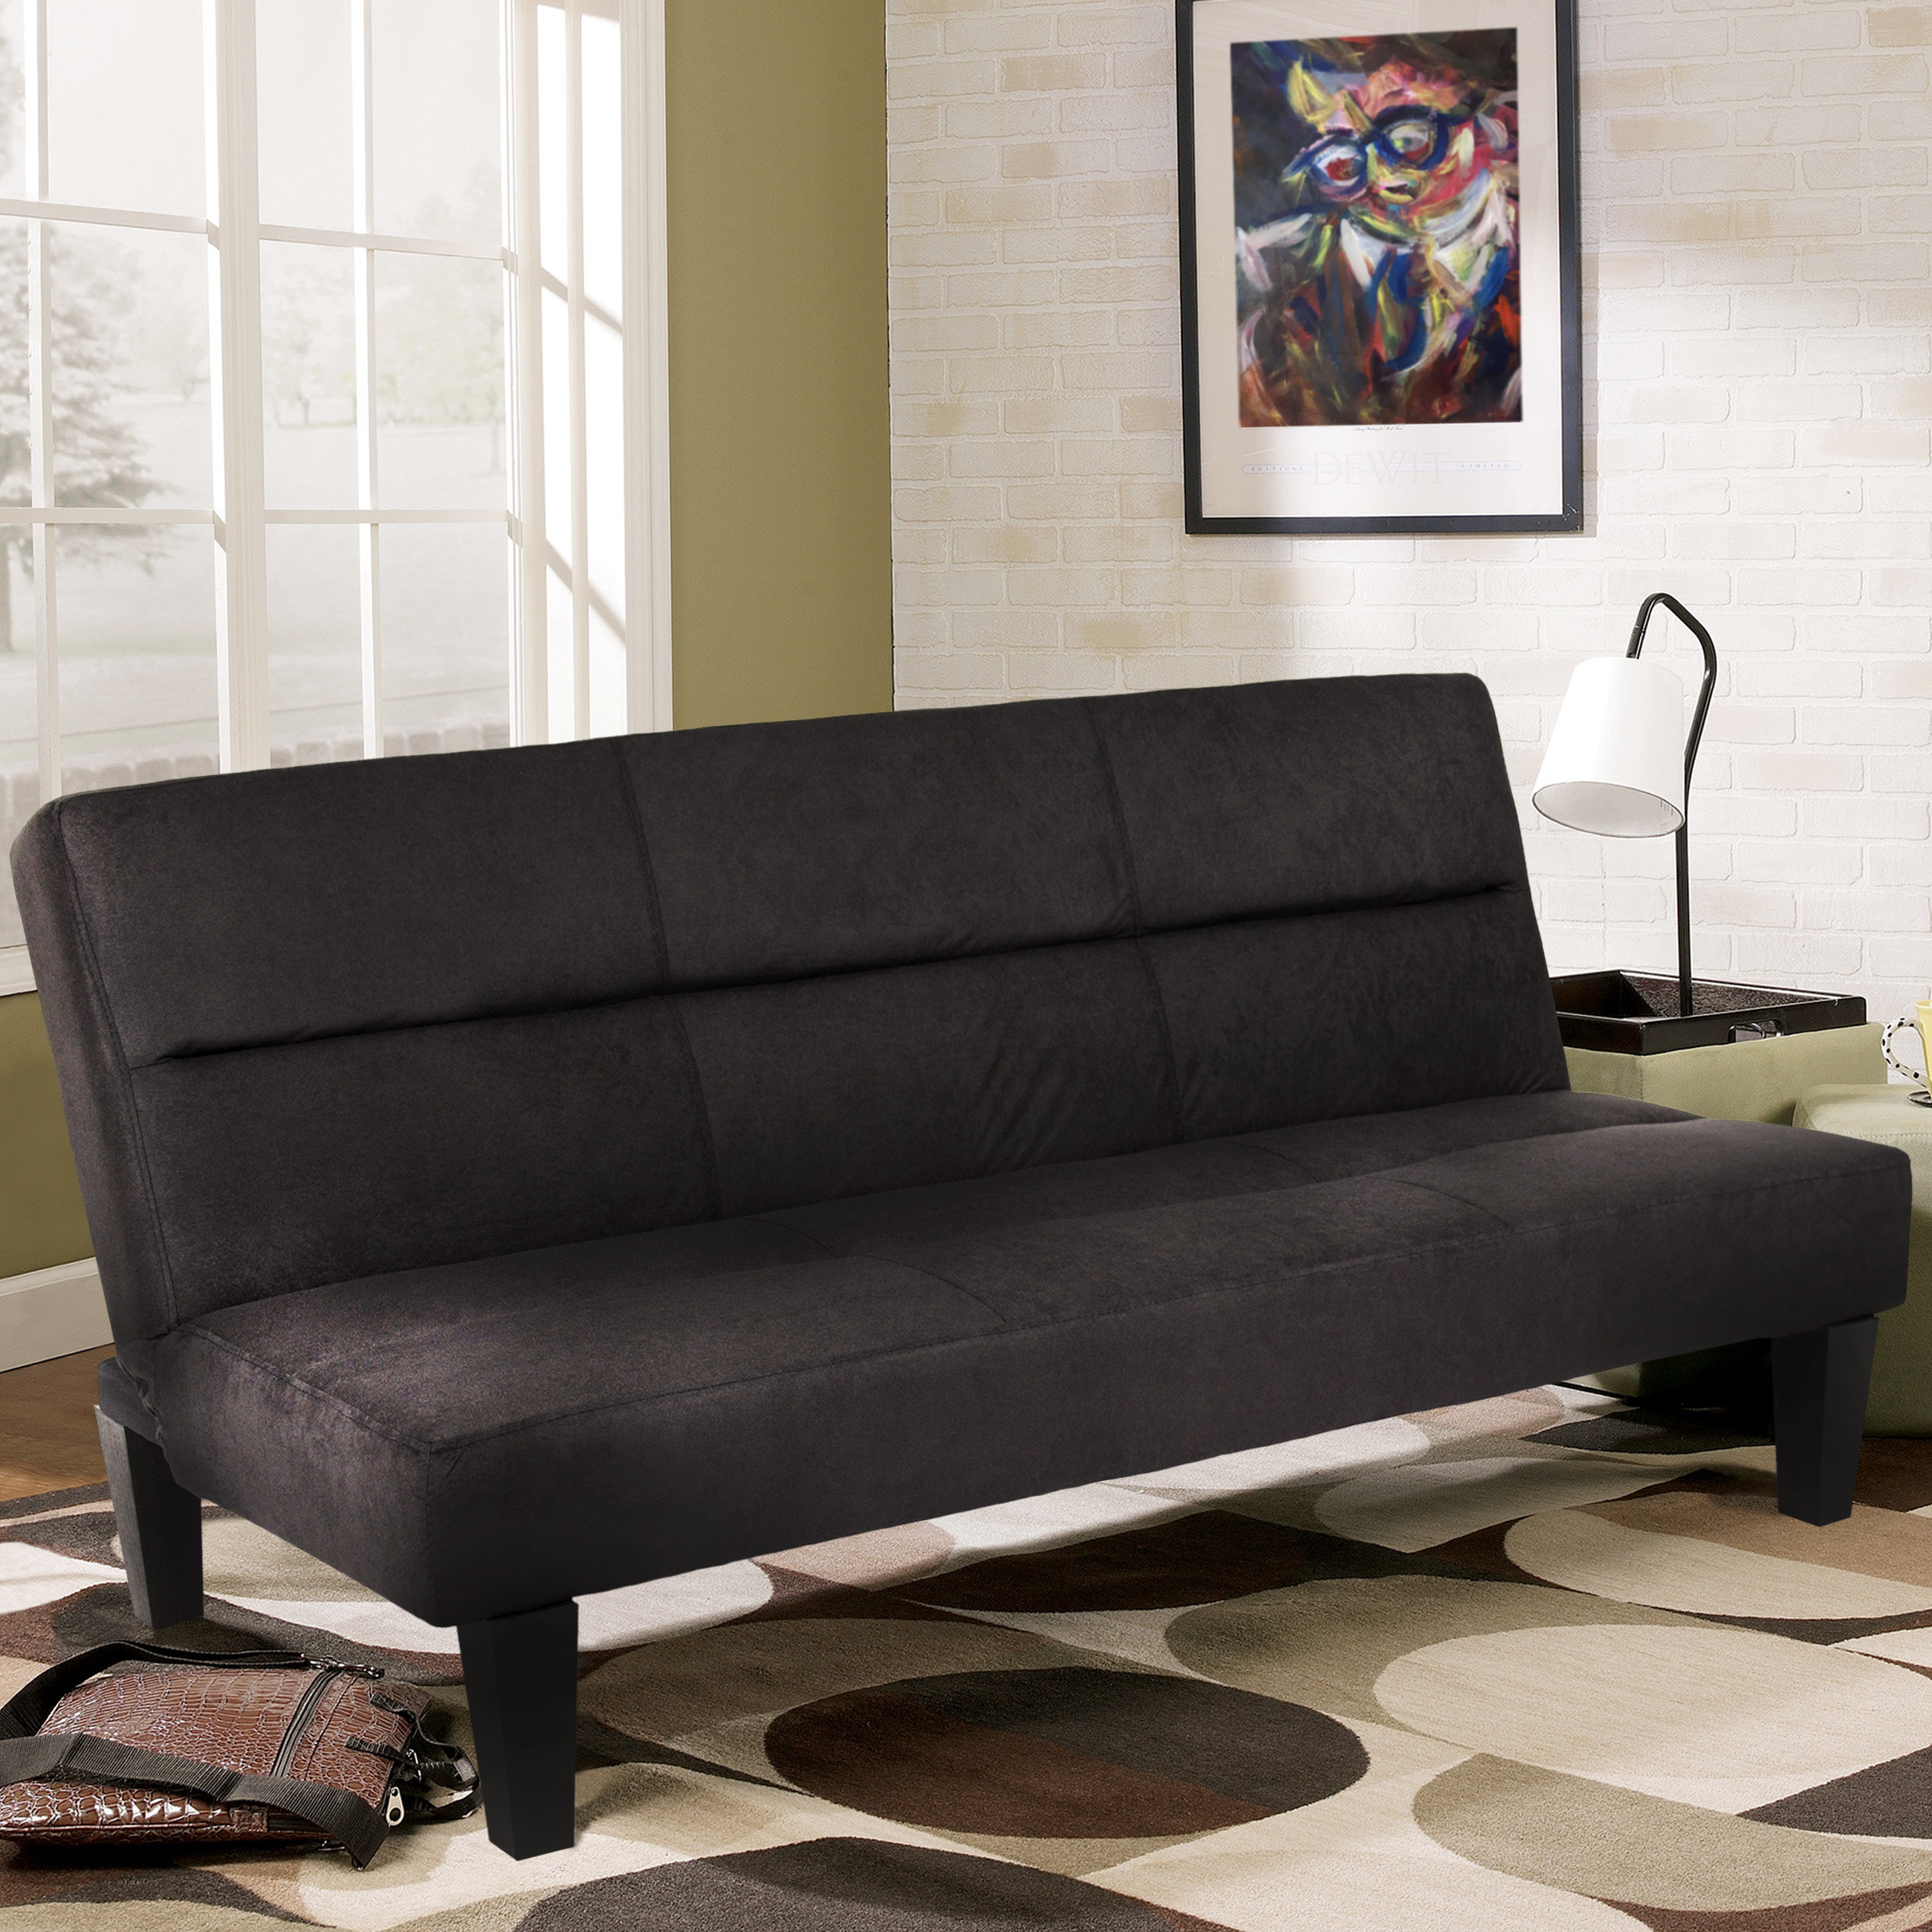 Best Choice Products Microfiber Futon Folding Couch Sofa (Black)